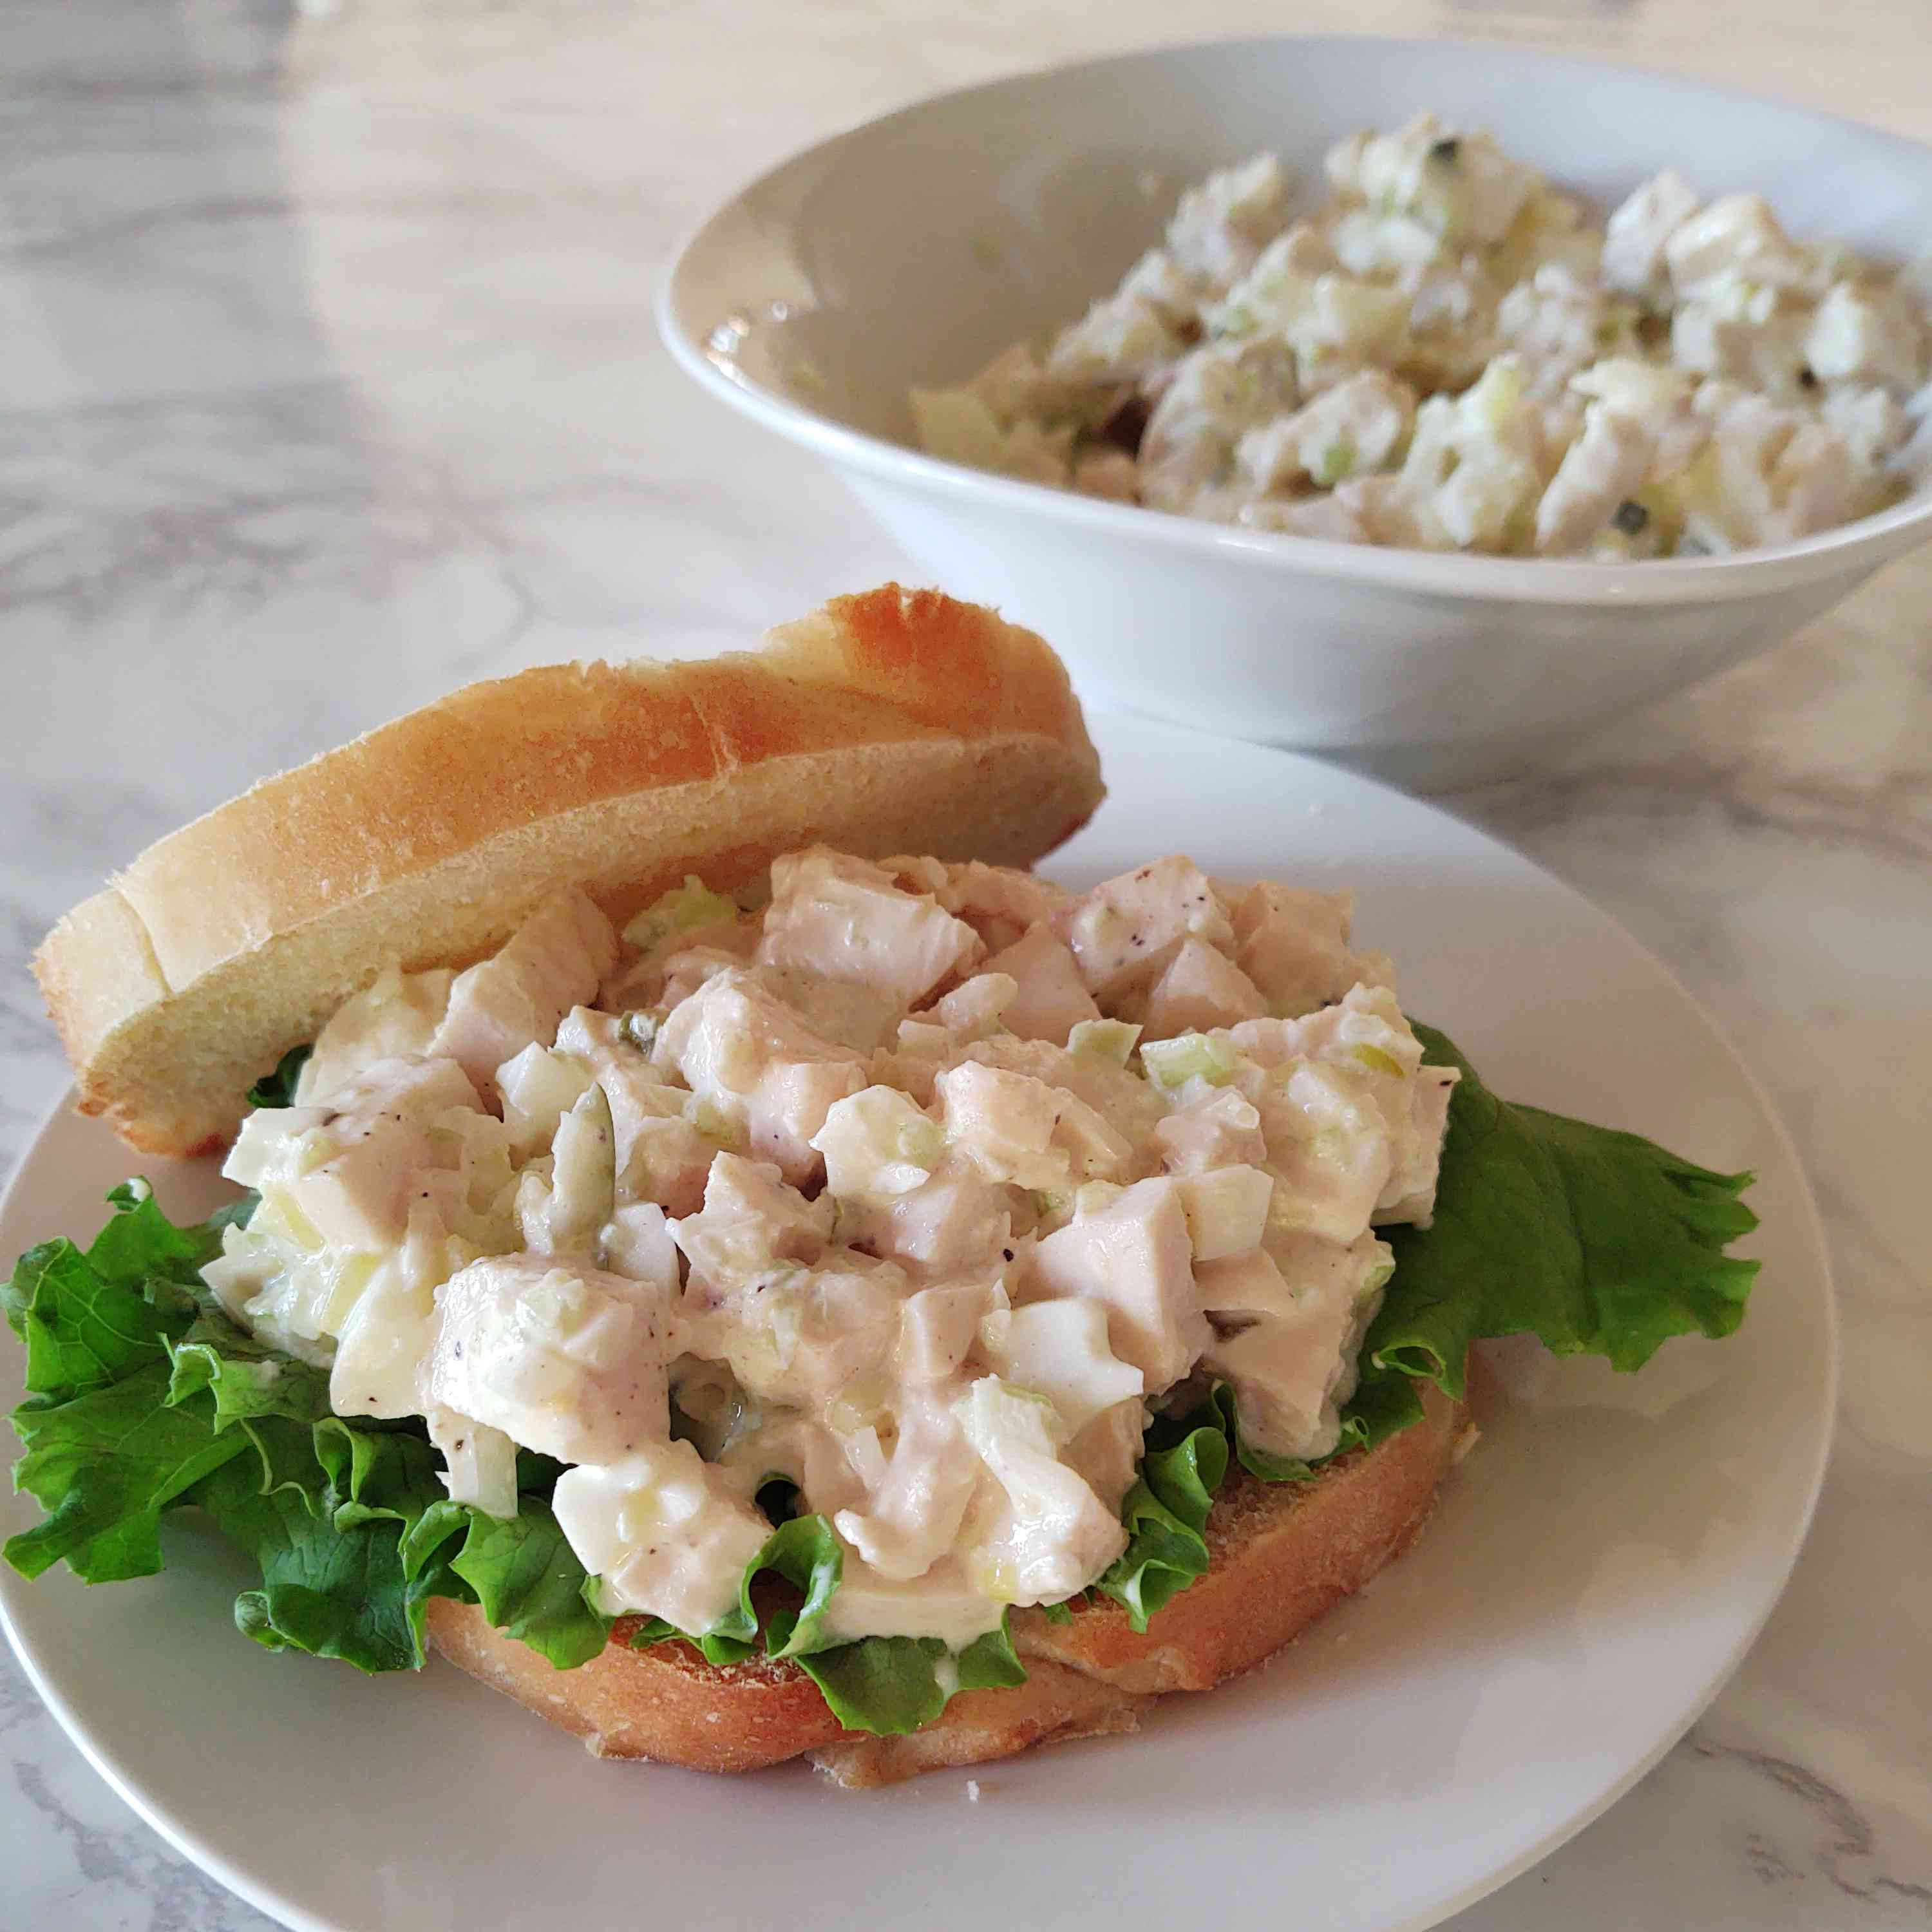 Classic Chicken Salad Sandwiches Tester Image